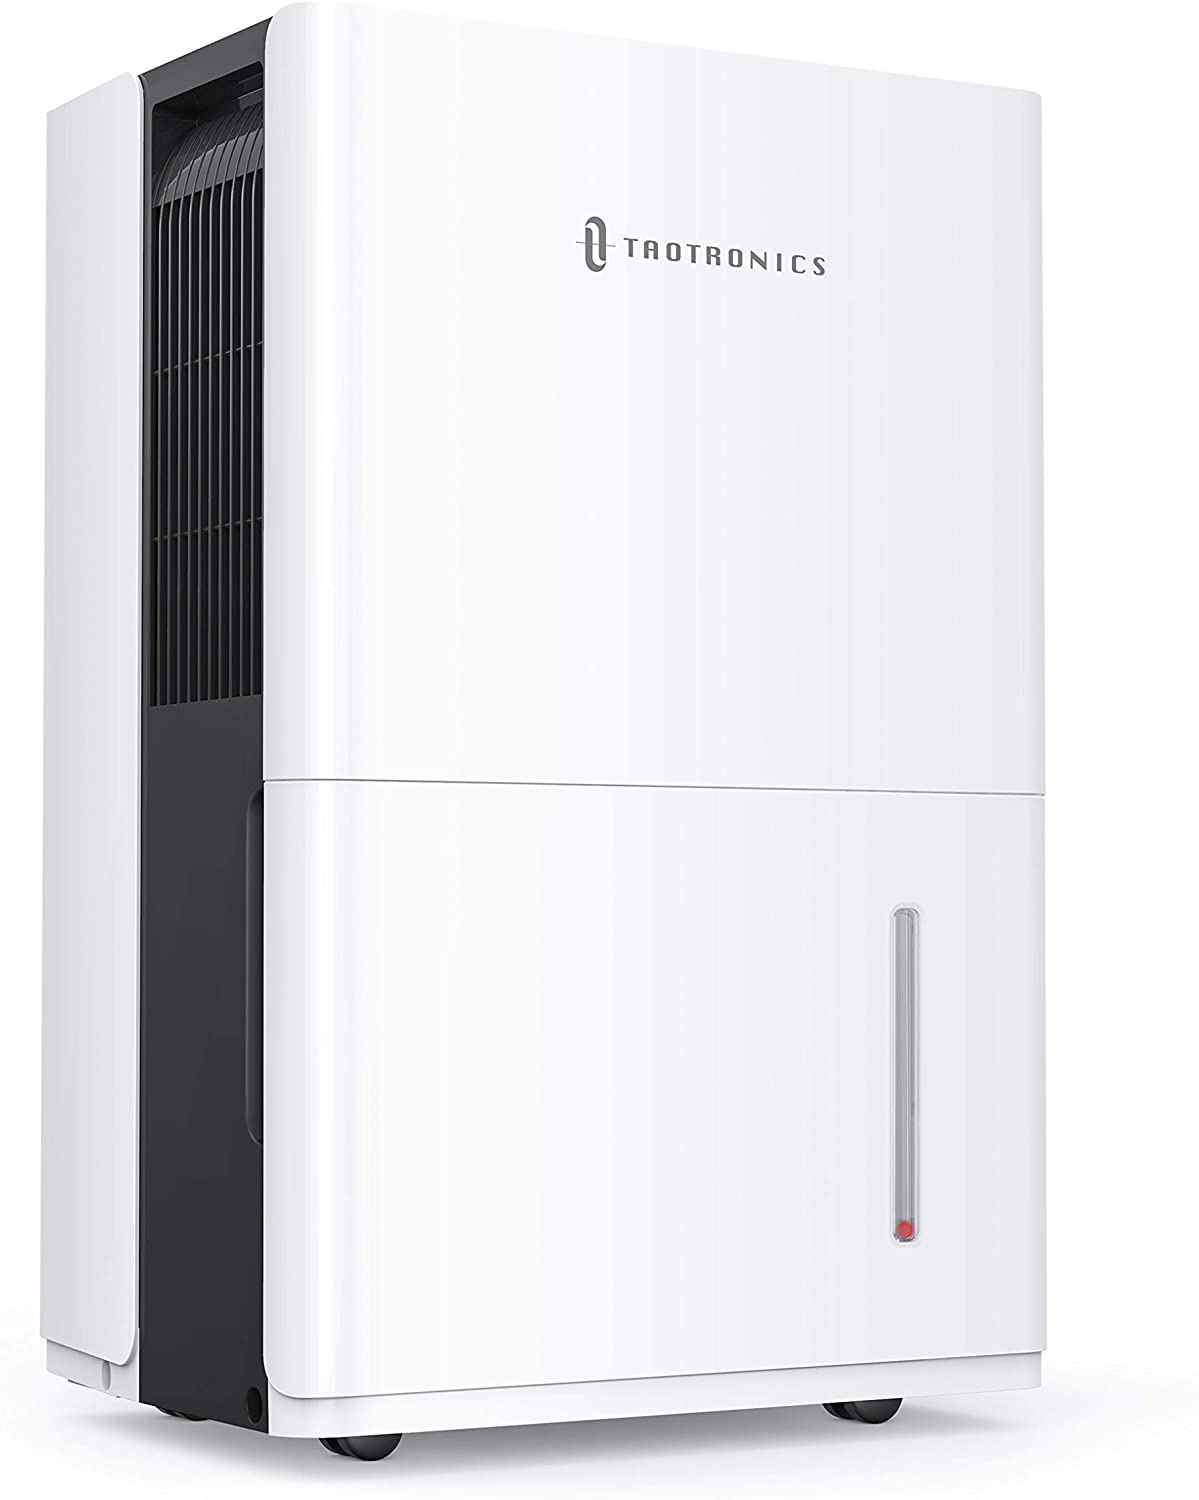 TaoTronics Dehumidifier 50 Pints Review